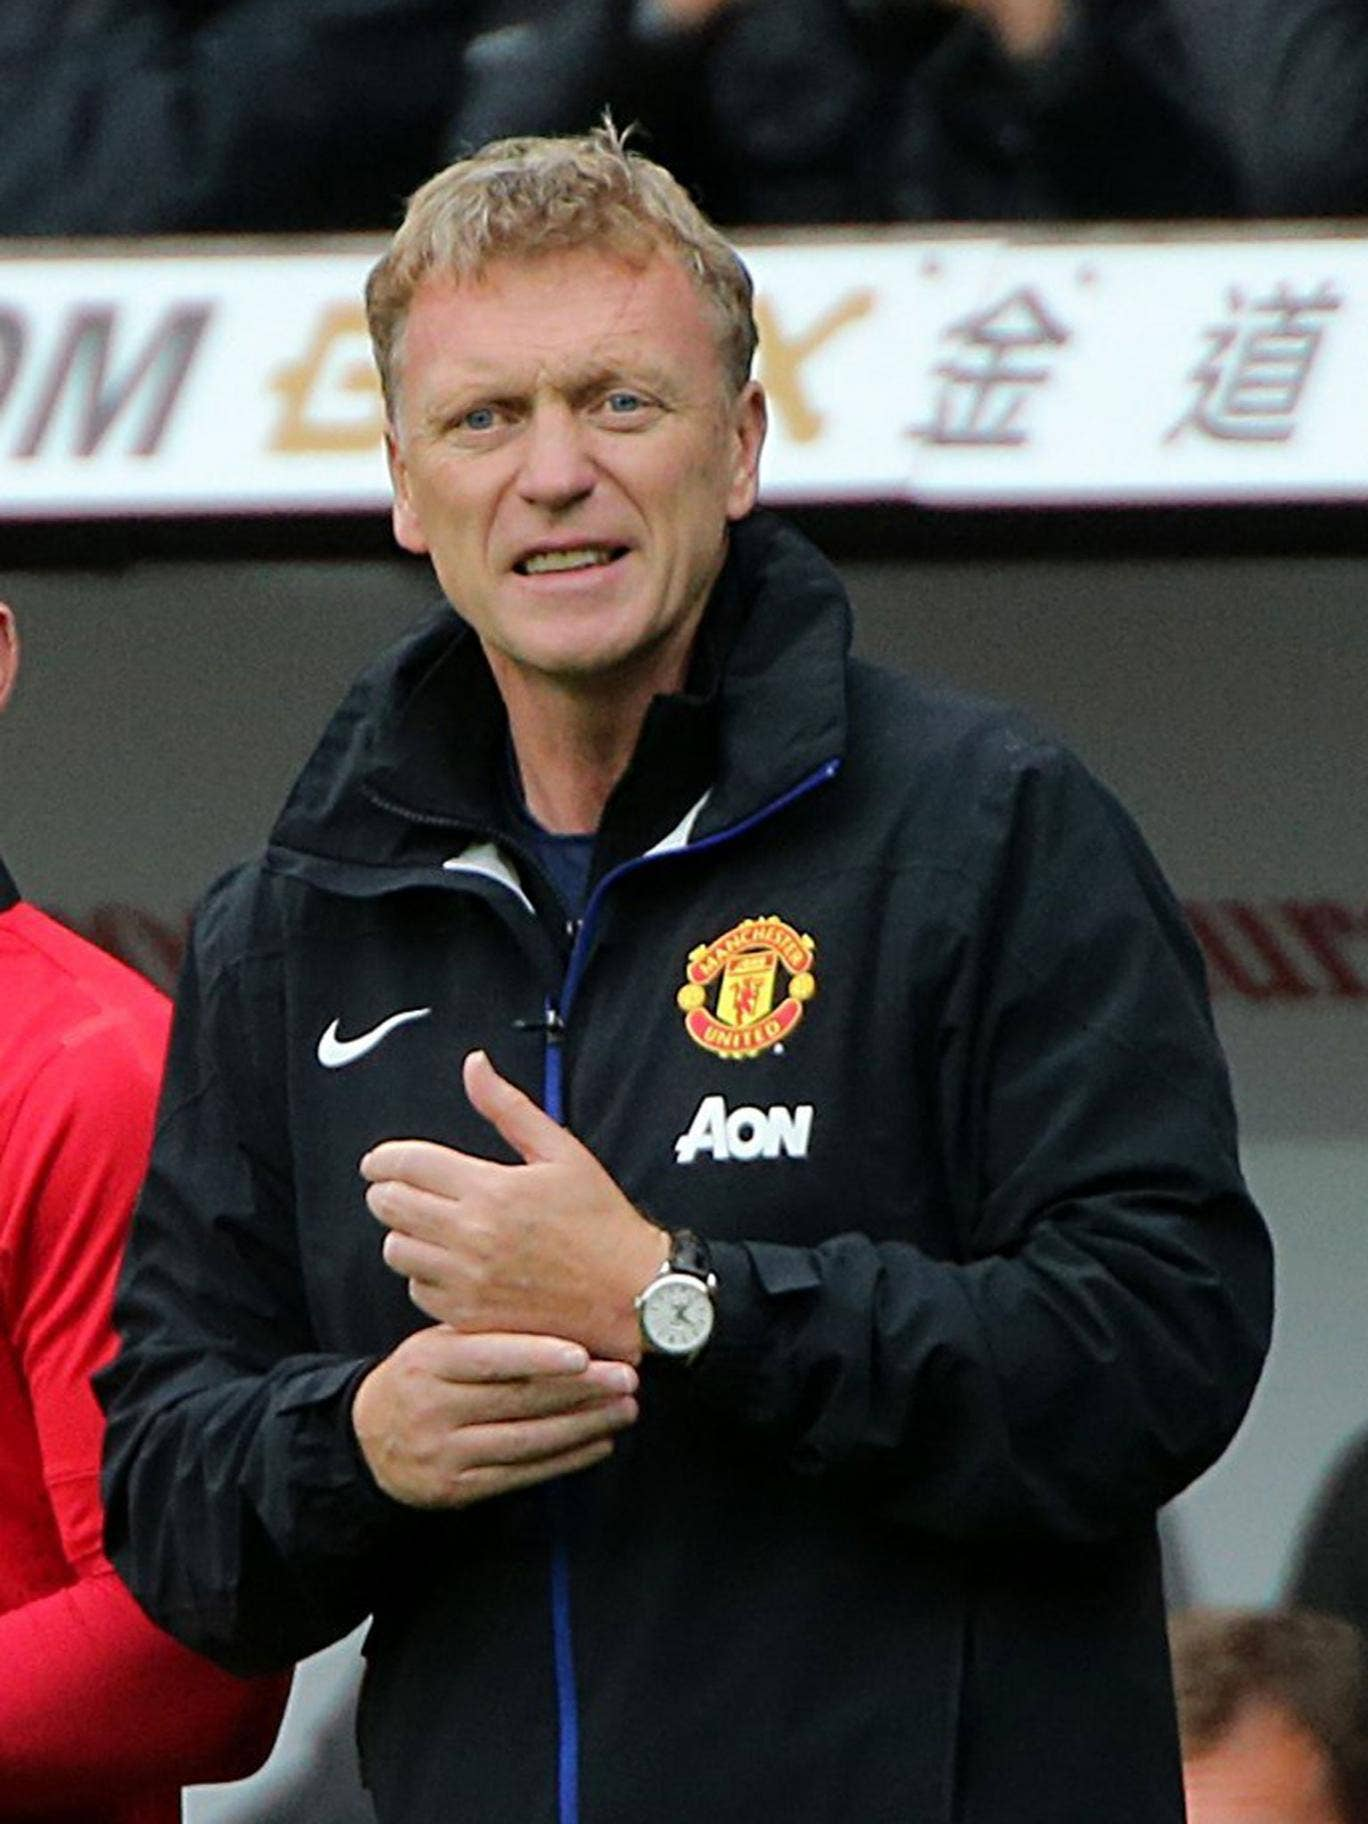 David Moyes is clever at changing tactics mid-game, says Pat Nevin